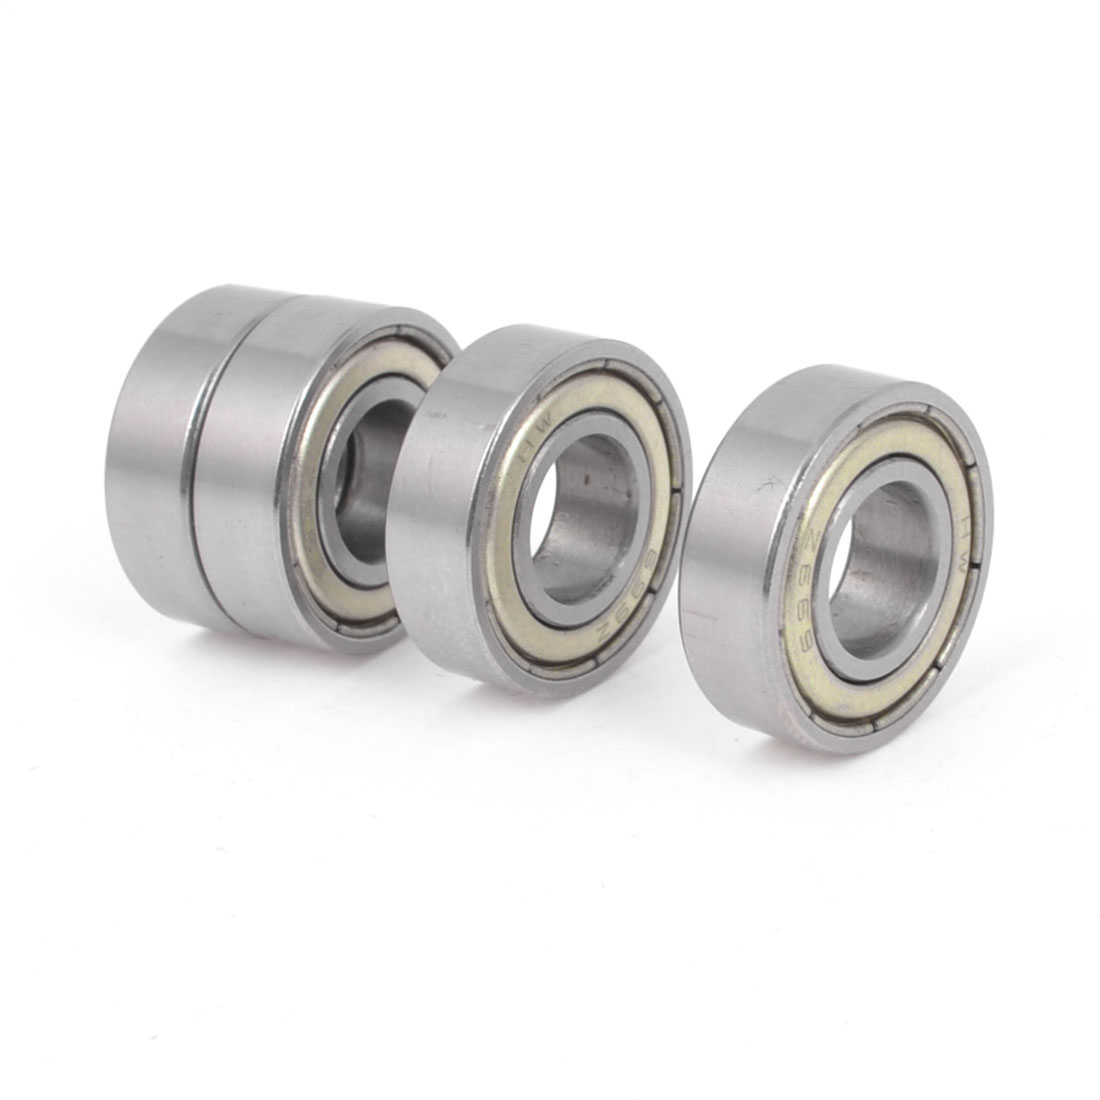 4 Pieces 699Z 9mm x 20mm x 6mm One Row Sealed Deep Groove Ball Bearing